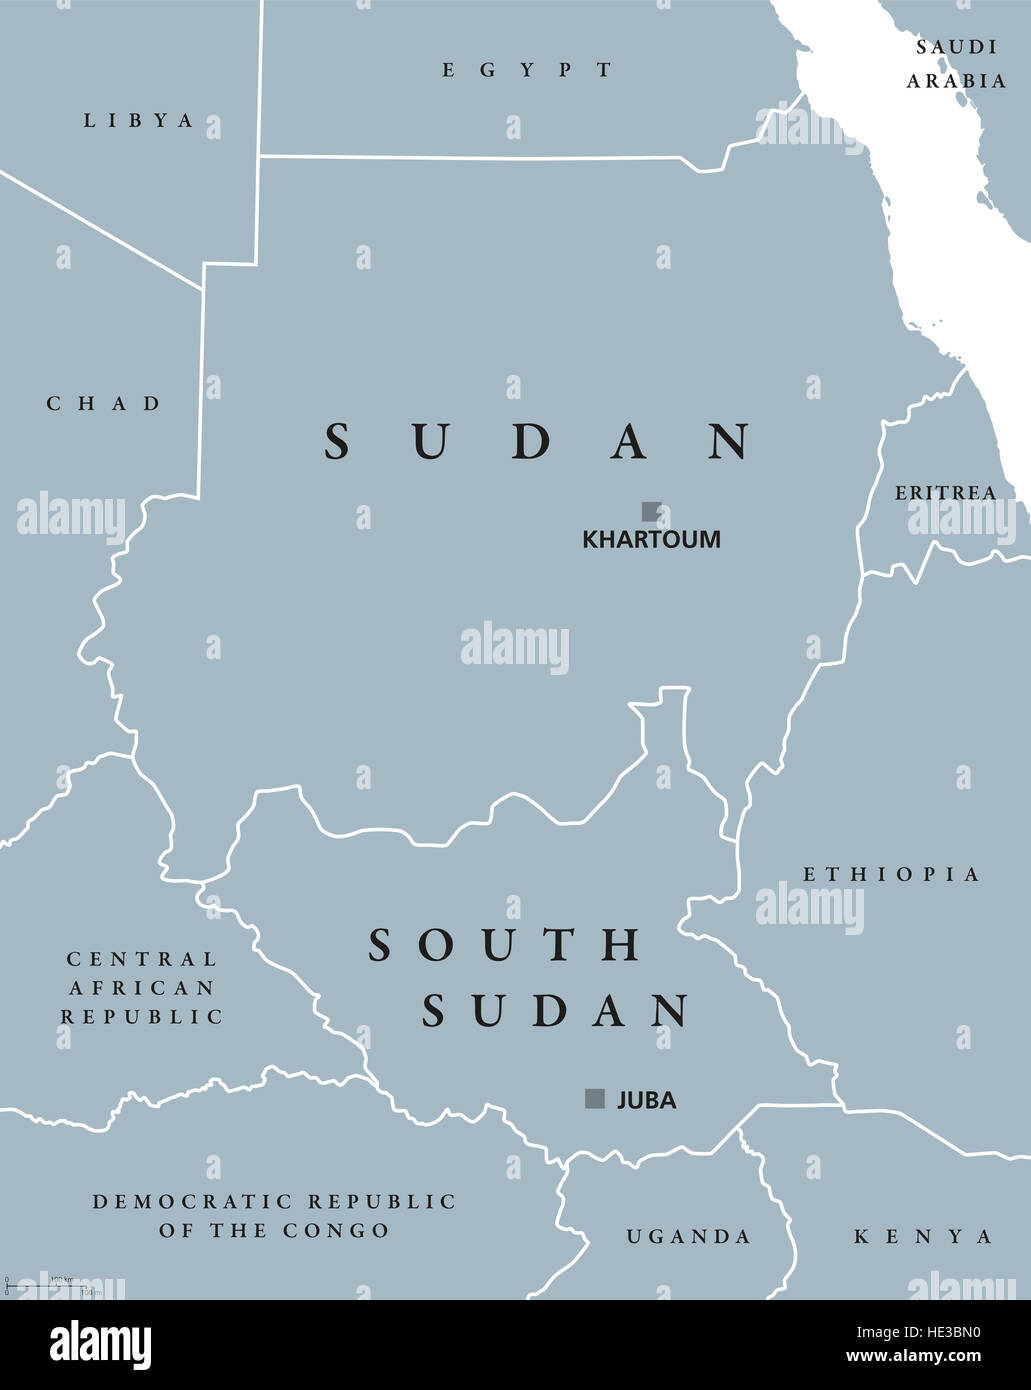 Sudan and South Sudan political map with capitals Khartoum and Juba